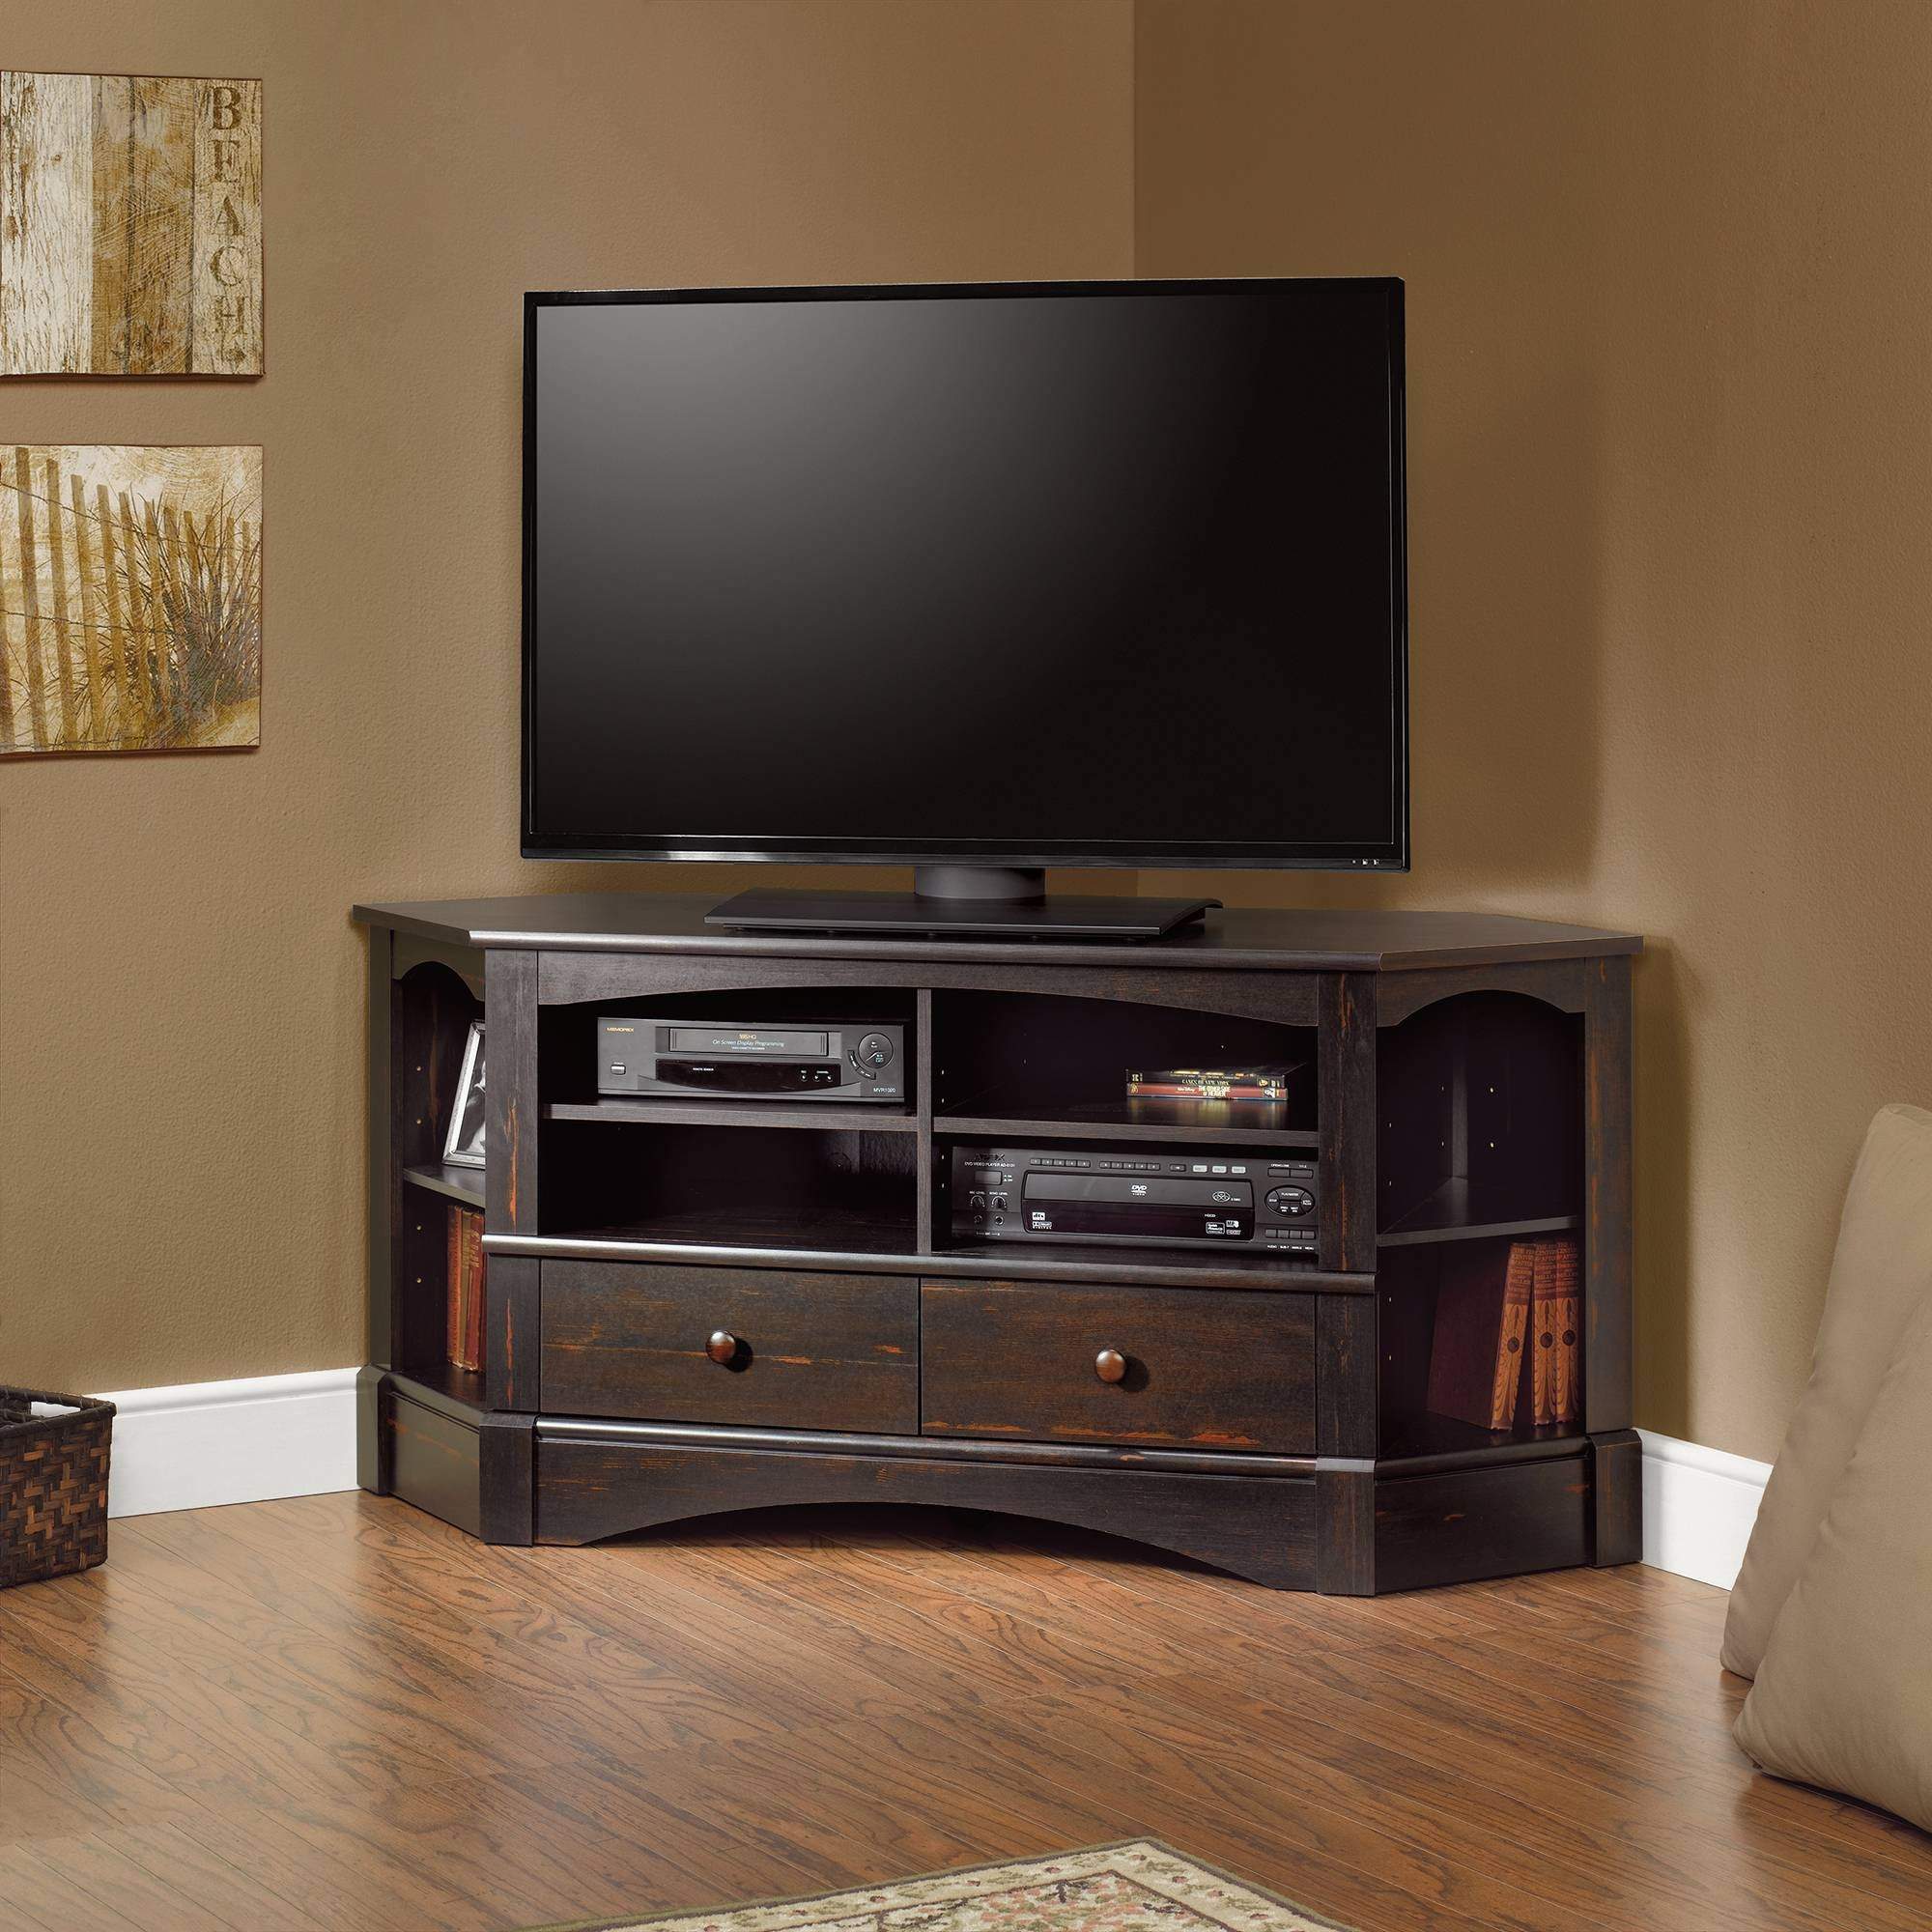 Small Wooden Corner Tv Stand Console Cabinet With Fireplace with Cornet Tv Stands (Image 6 of 15)